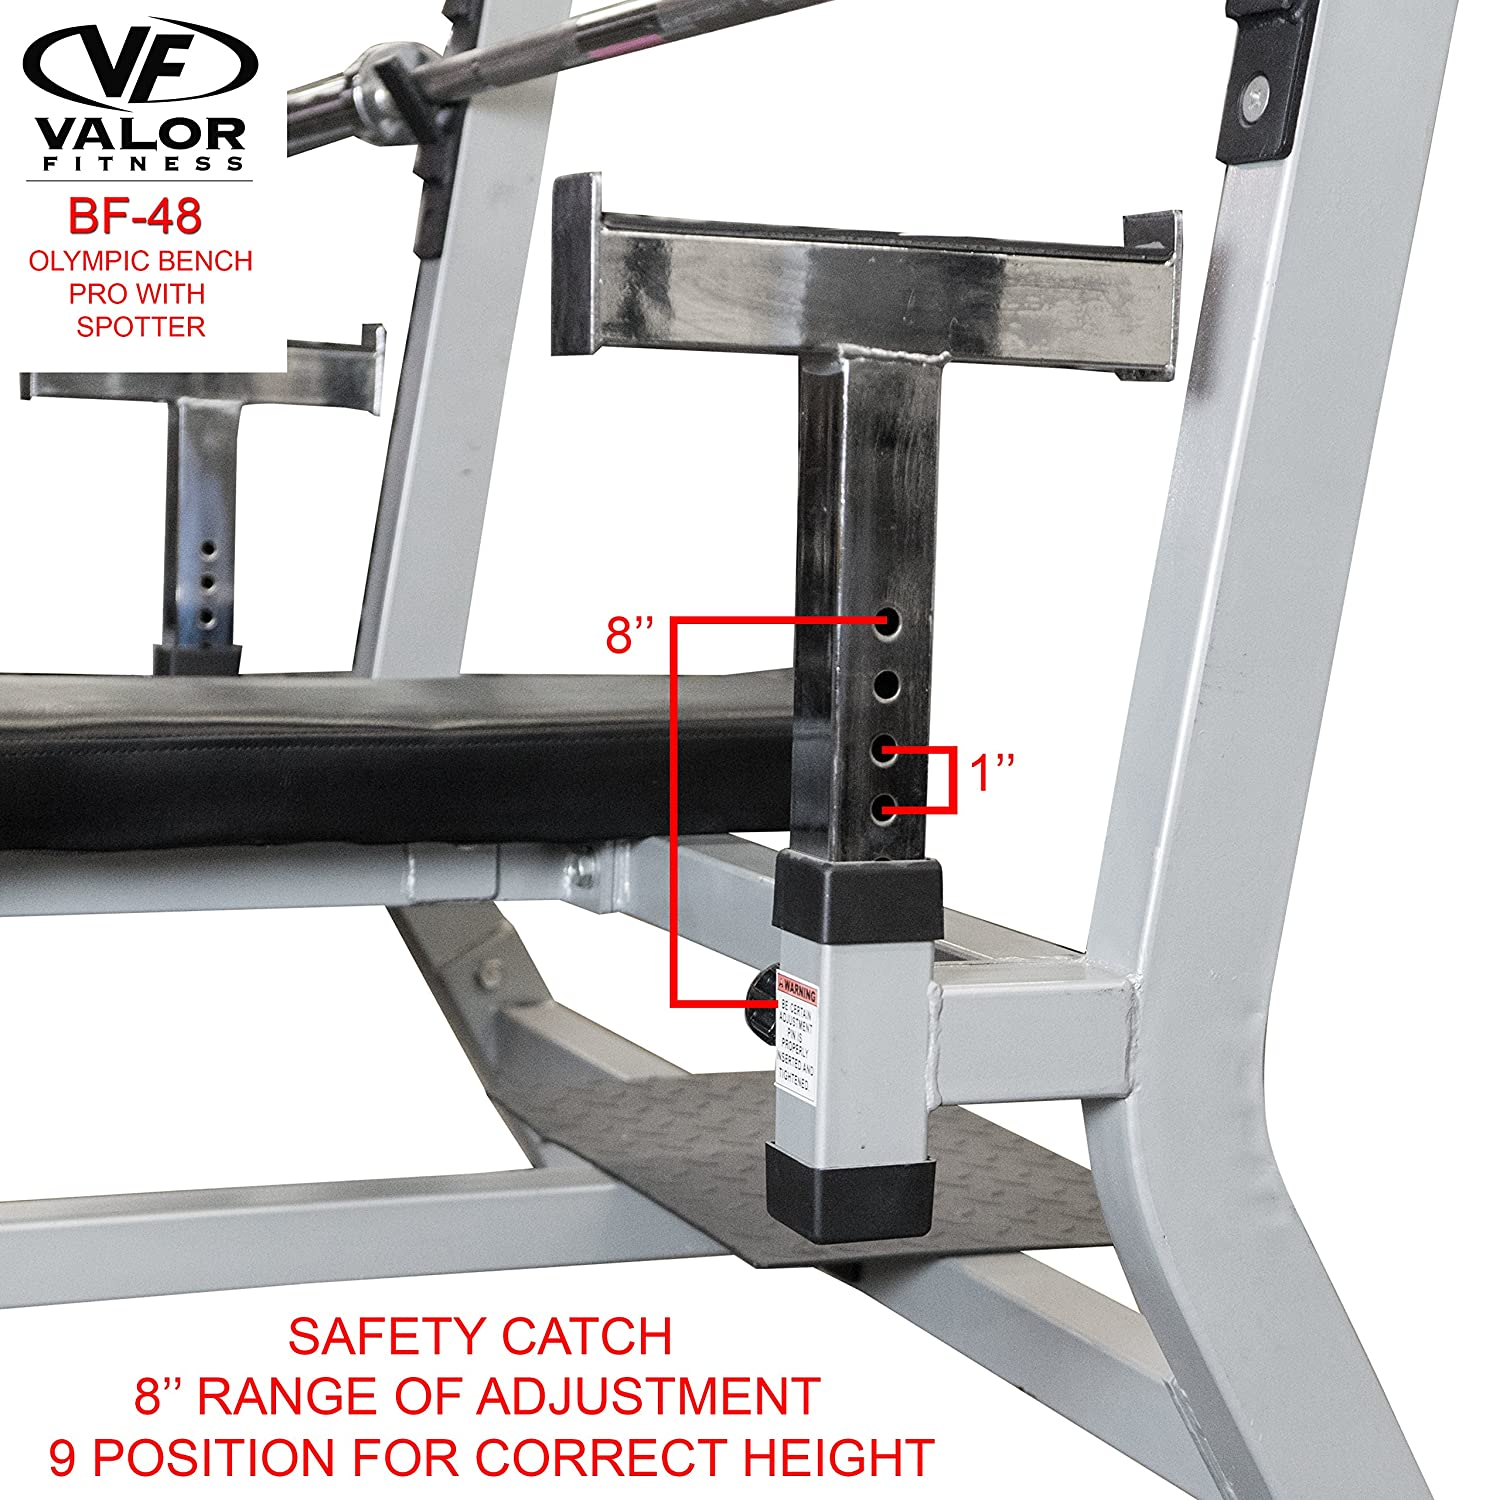 gear goods core bench sporting p pro s dick is weight fitness noimagefound